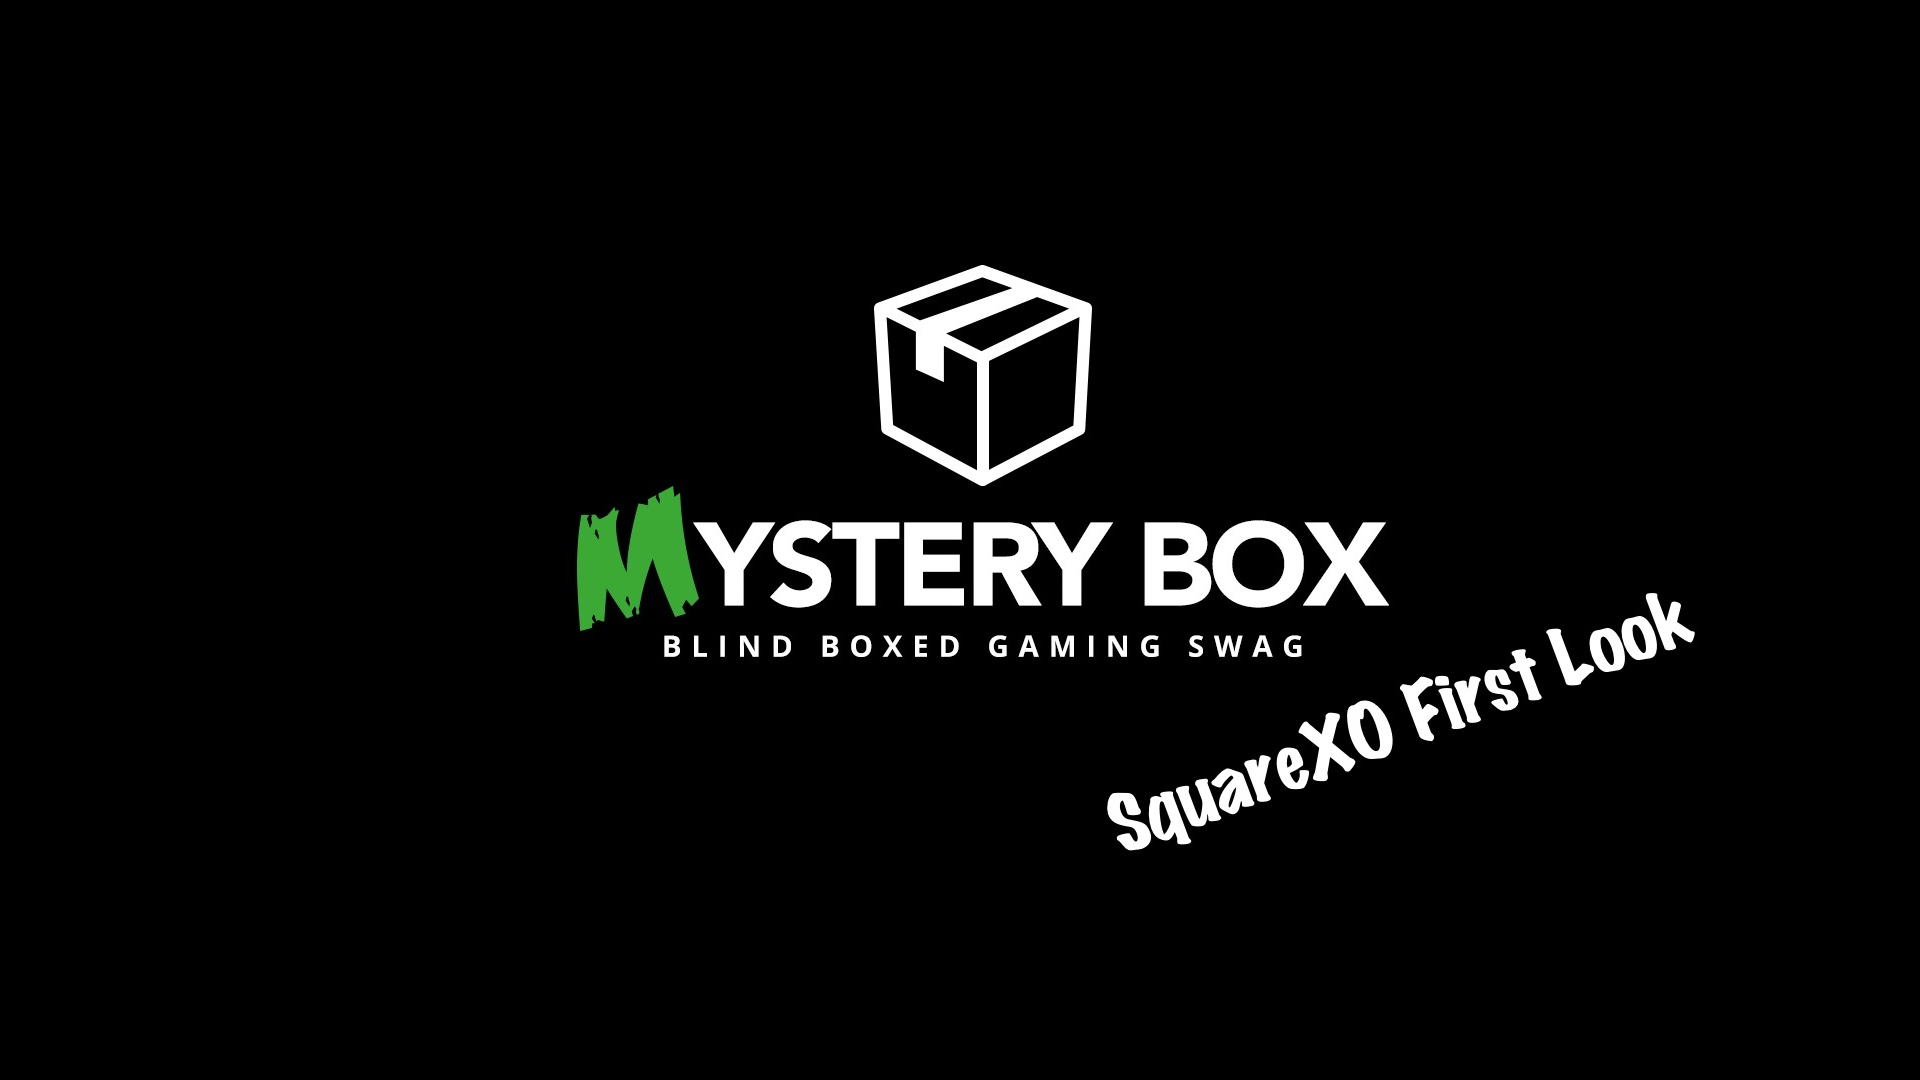 Monster Shop £15 Mystery Box – First Look